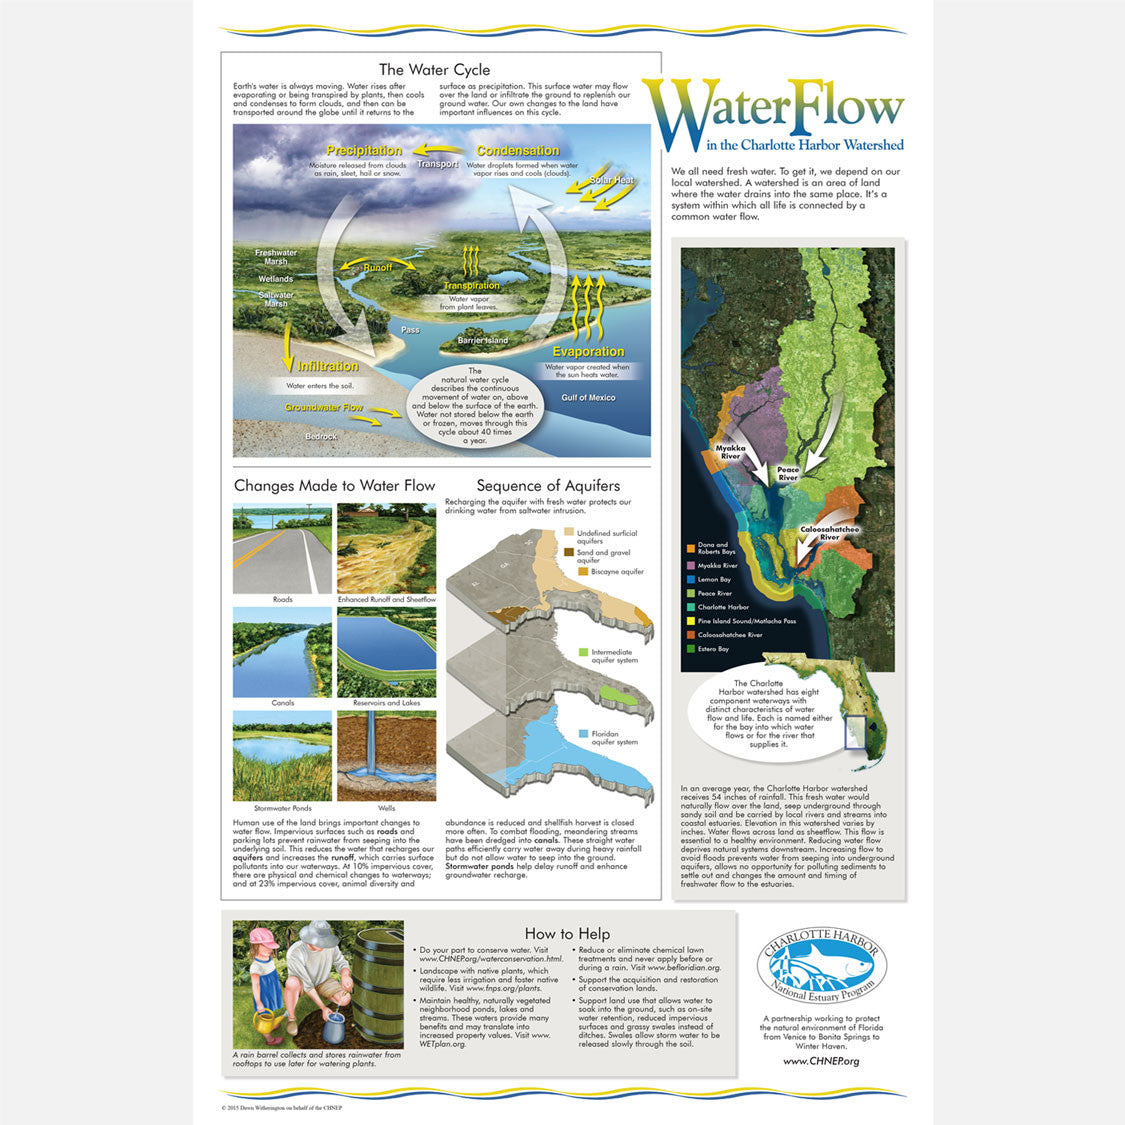 This beautiful poster provides information about Waterflow in the Charlotte Harbor Watershed.